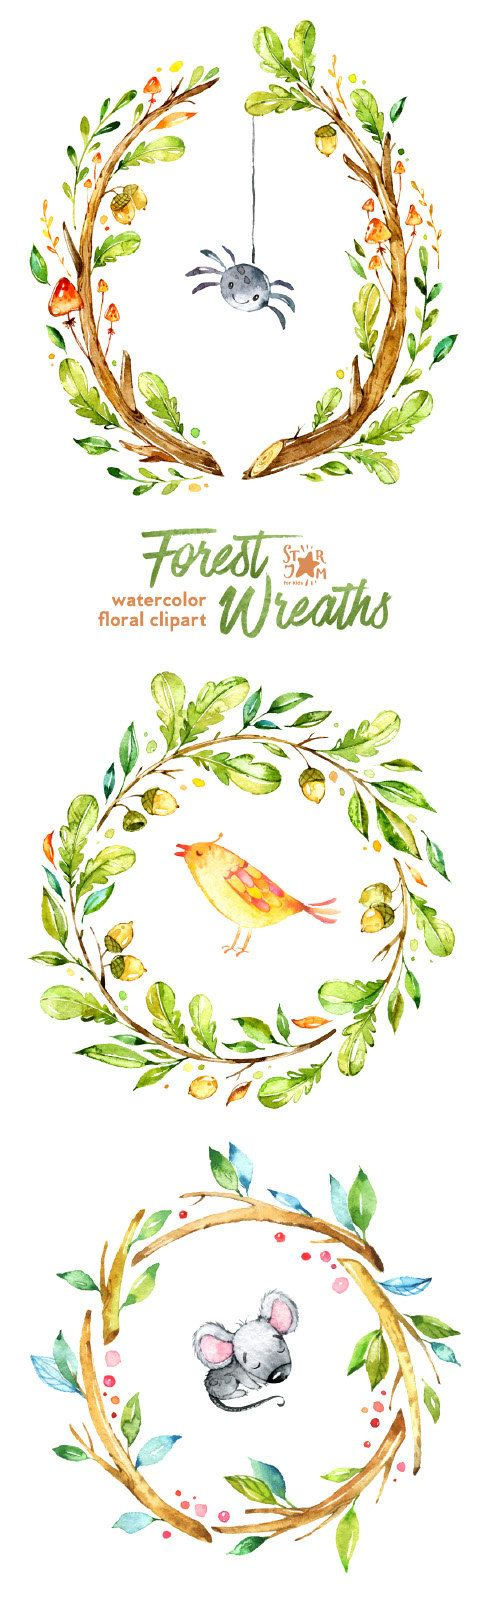 This Floral Forest Wreaths and other graphics Set is just what you needed for the perfect invitations, craft projects, paper products, party decorations, printable, greetings cards, posters, stationery, scrapbooking, stickers, t-shirts, baby clothes, web designs and much more.  ::::: DETAILS :::::  This collection includes 14 images: - 3 Wreaths in PNG files, transparent background, approx. size: 11.3x11.3in(3400x3400px) - 11 Elements(Branches, bird, mouse, spider) in PNG files, transparent…